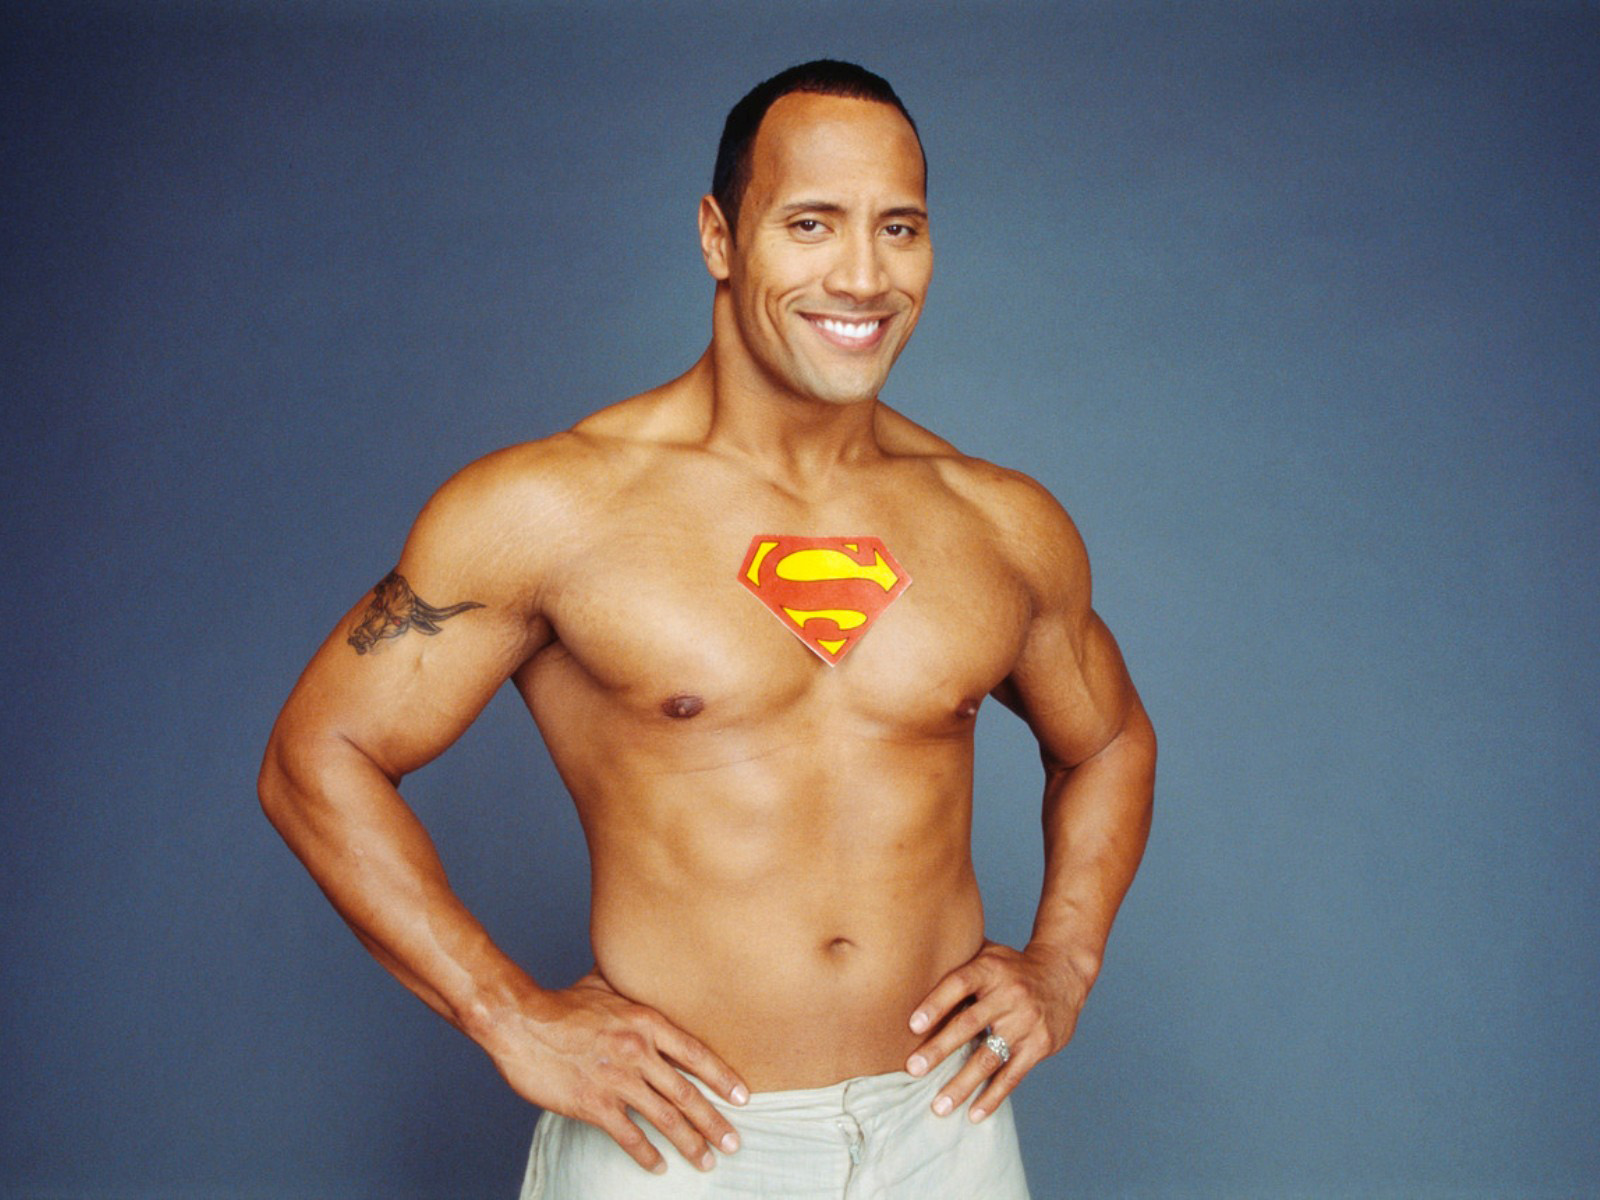 Dwayne Johnson The Rock shirtless muscles wallpaper